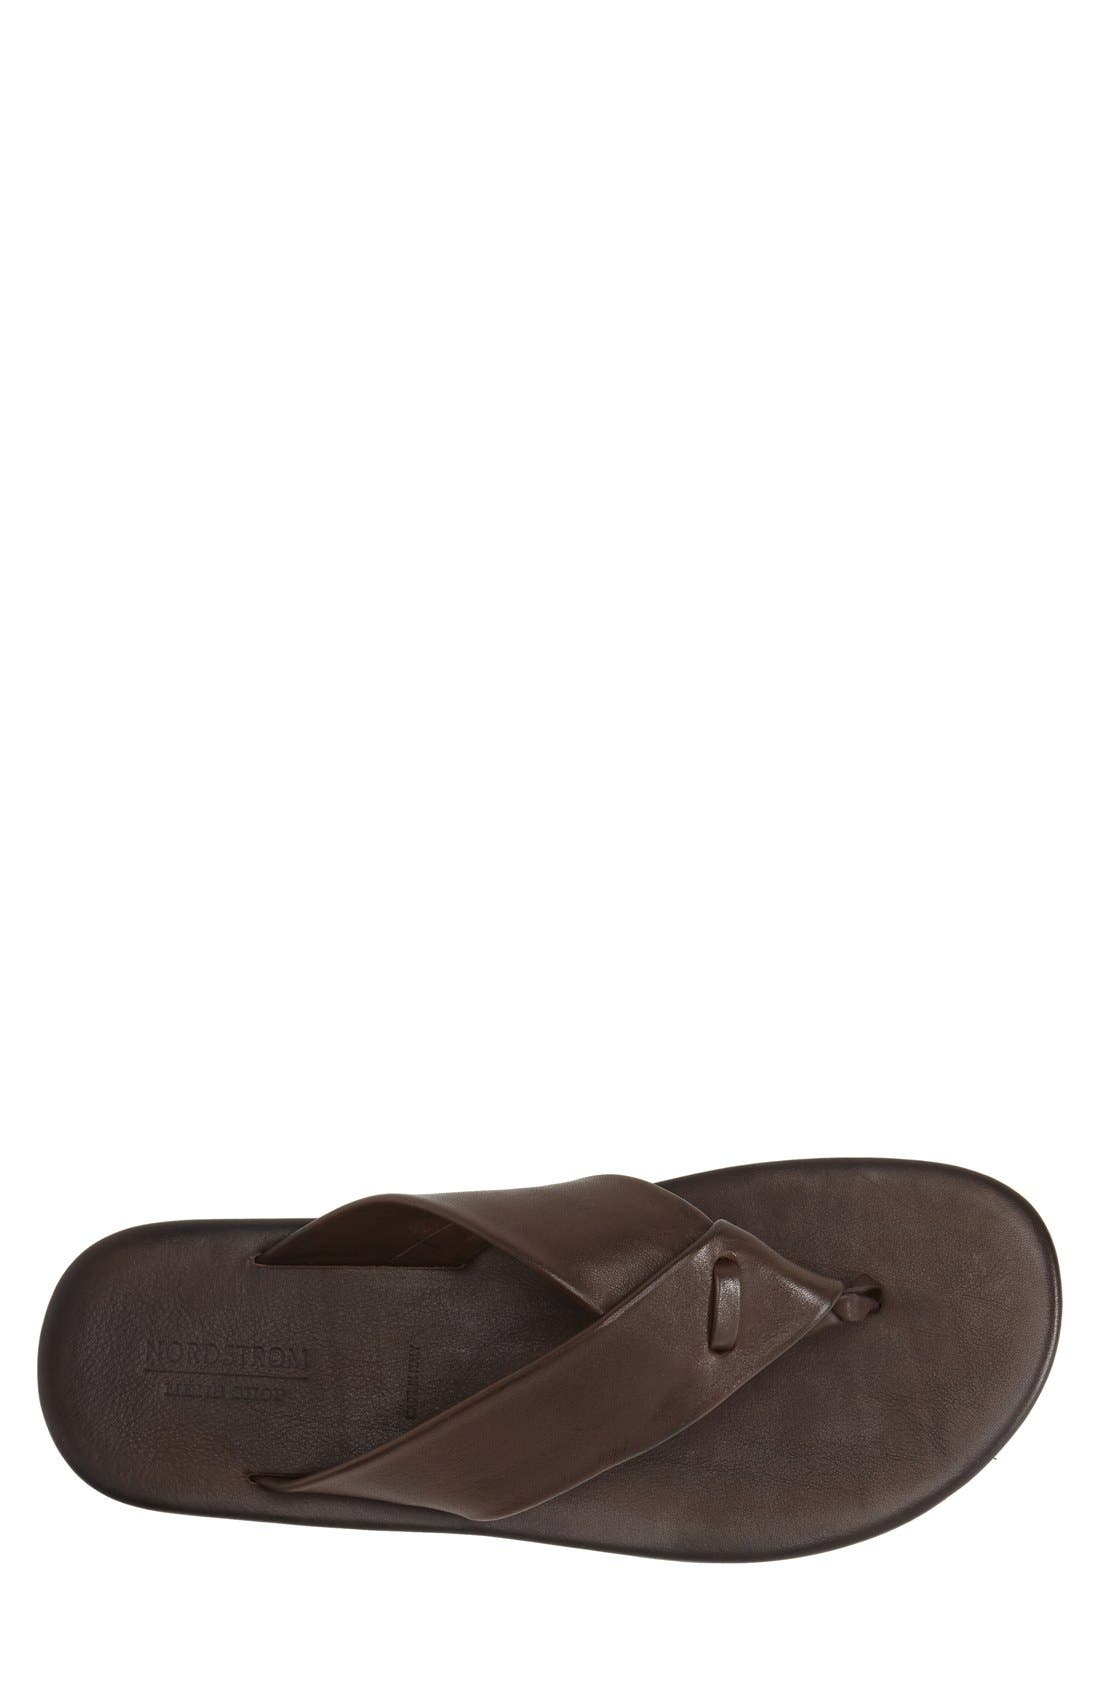 Alternate Image 3  - Nordstrom Men's Shop 'Breeze' Flip Flop (Men)